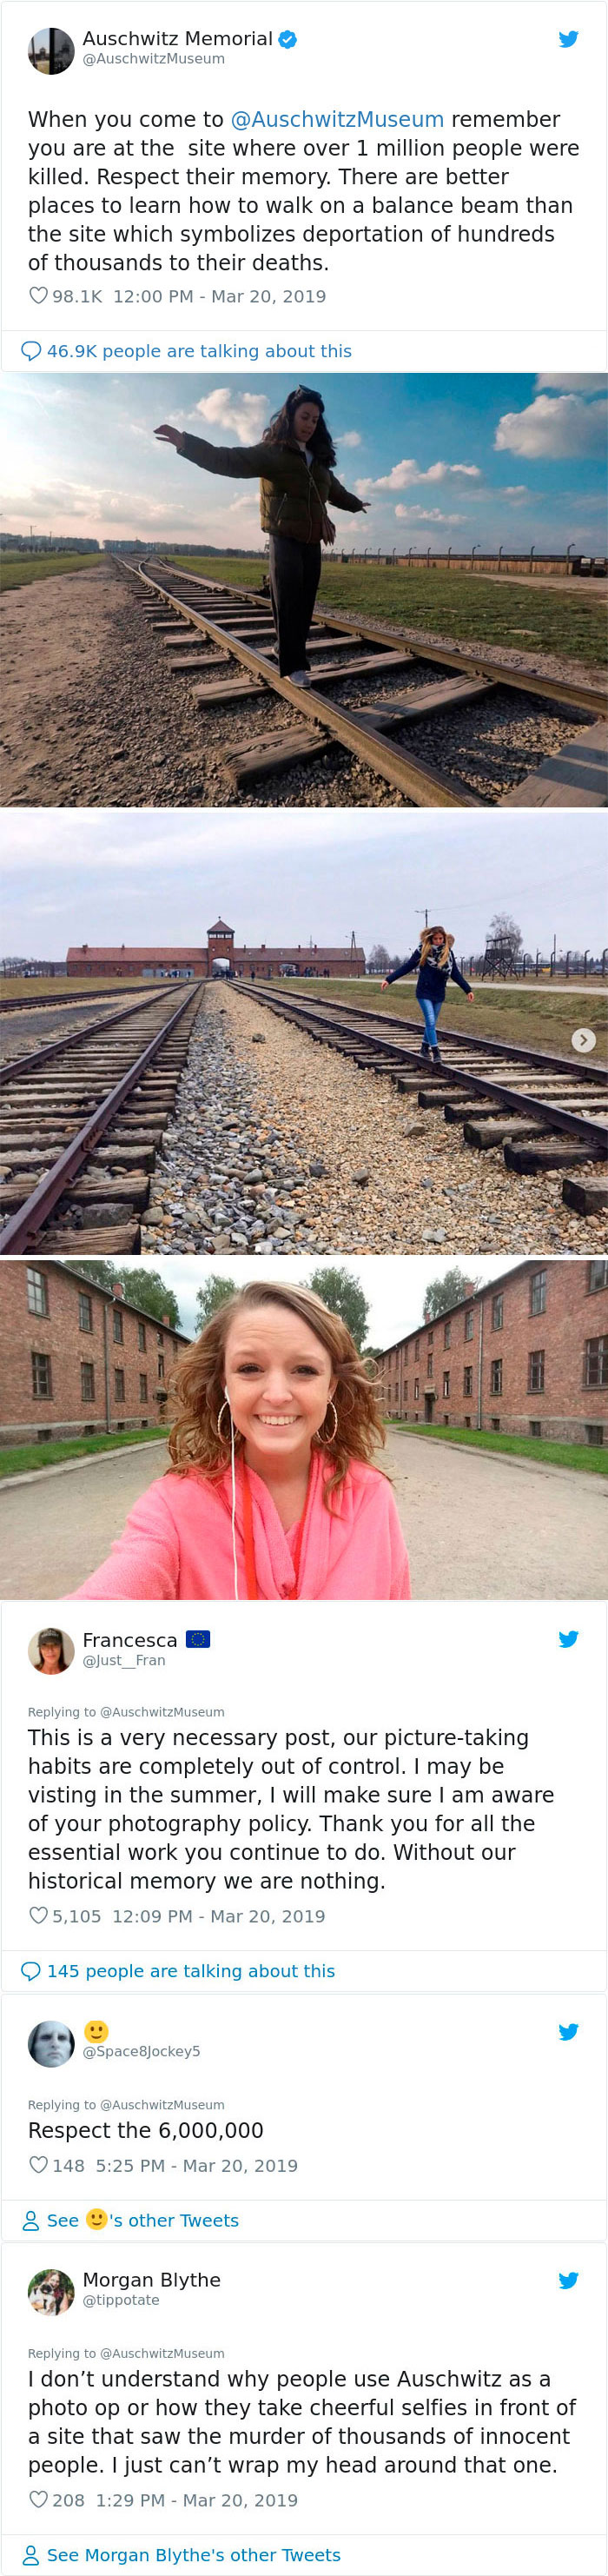 When You Come To Auschwitz Museum Remember You Are At The Site Where Over 1 Million People Were Killed. Respect Their Memory. There Are Better Places To Learn How To Walk On A Balance Beam Than The Site Which Symbolizes Deportation Of Hundreds Of Thousands To Their Deaths